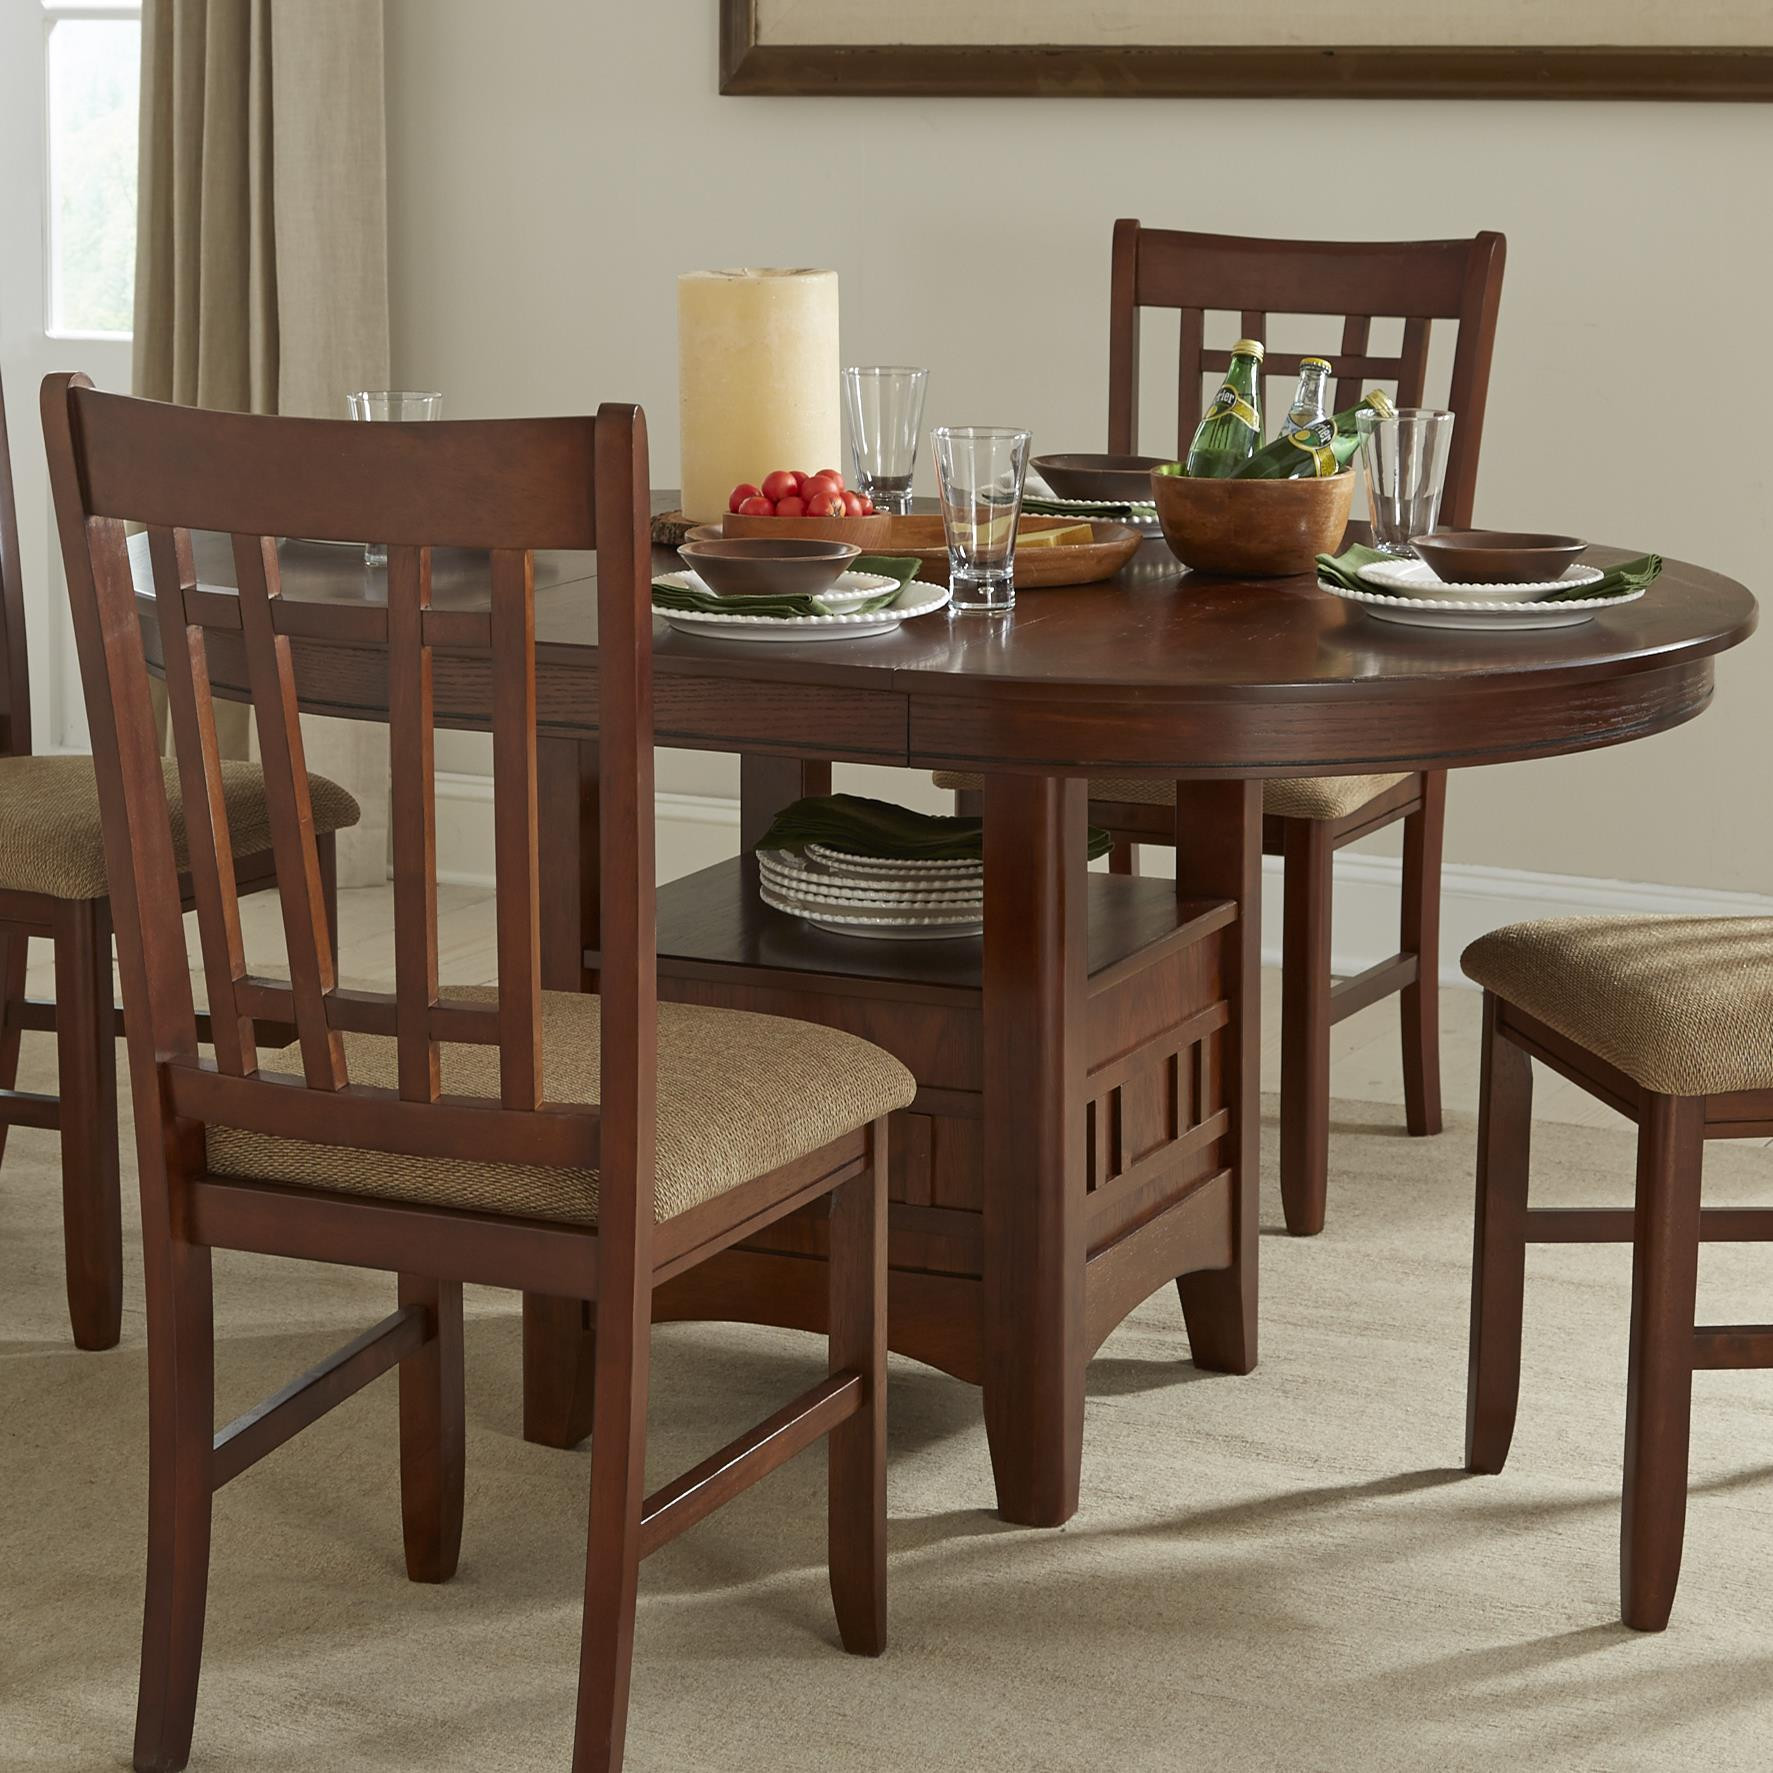 Best ideas about Dining Table With Storage . Save or Pin Intercon Mission Casuals Oval Dining Table with Storage Now.